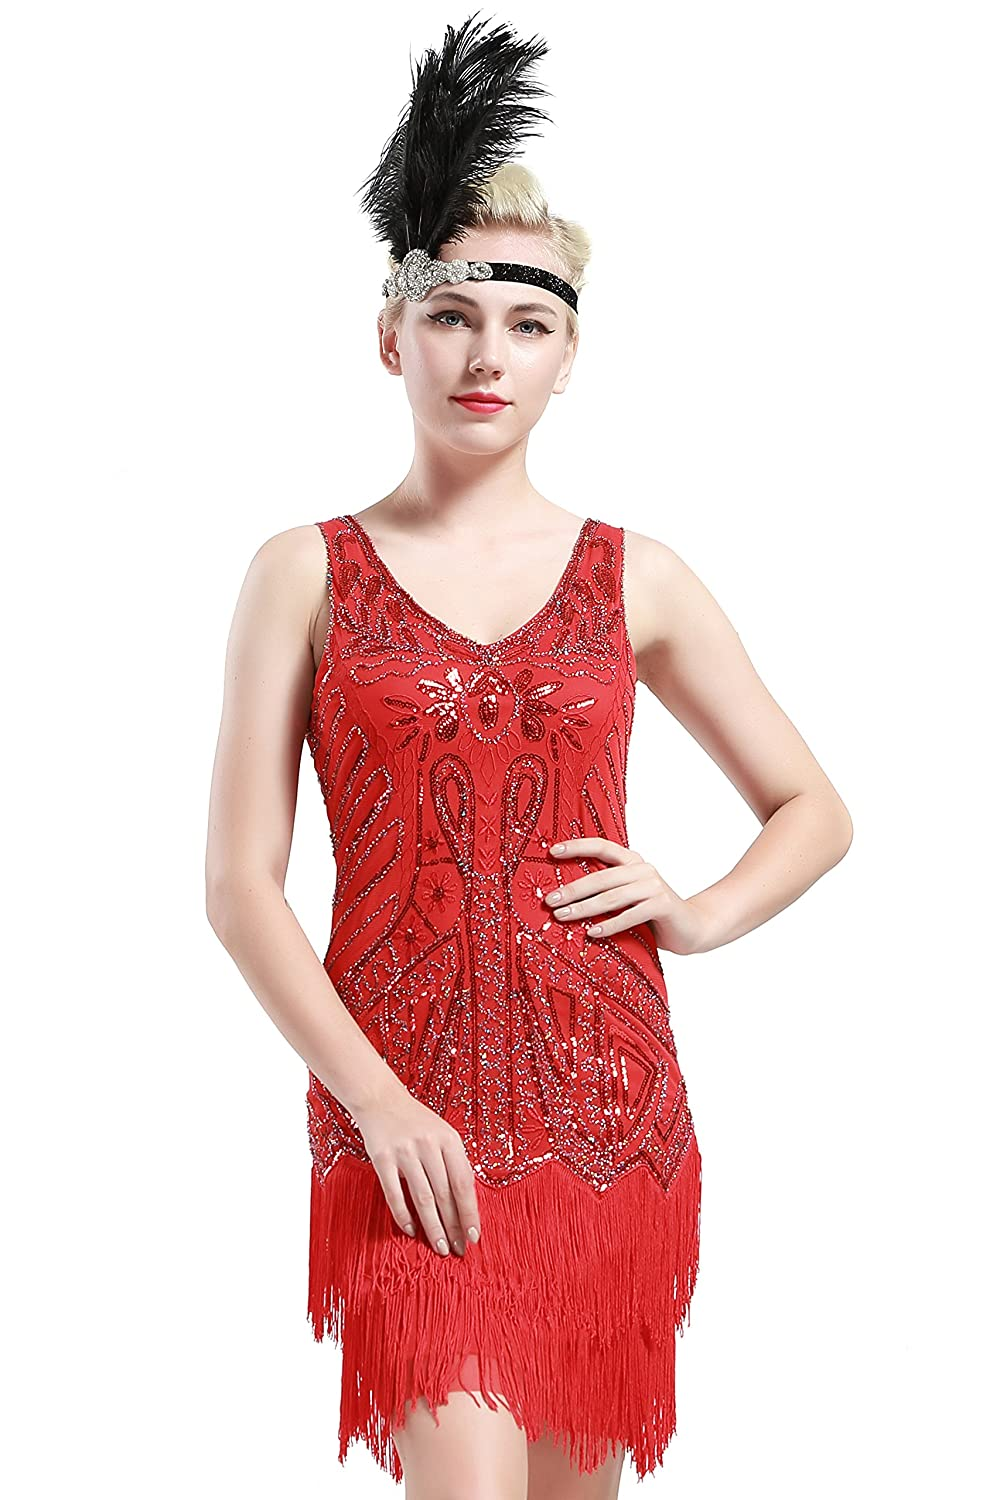 Roaring 20s Costumes- Flapper Costumes, Gangster Costumes BABEYOND Womens Flapper Dresses 1920s V Neck Beaded Fringed Great Gatsby Dress $41.99 AT vintagedancer.com